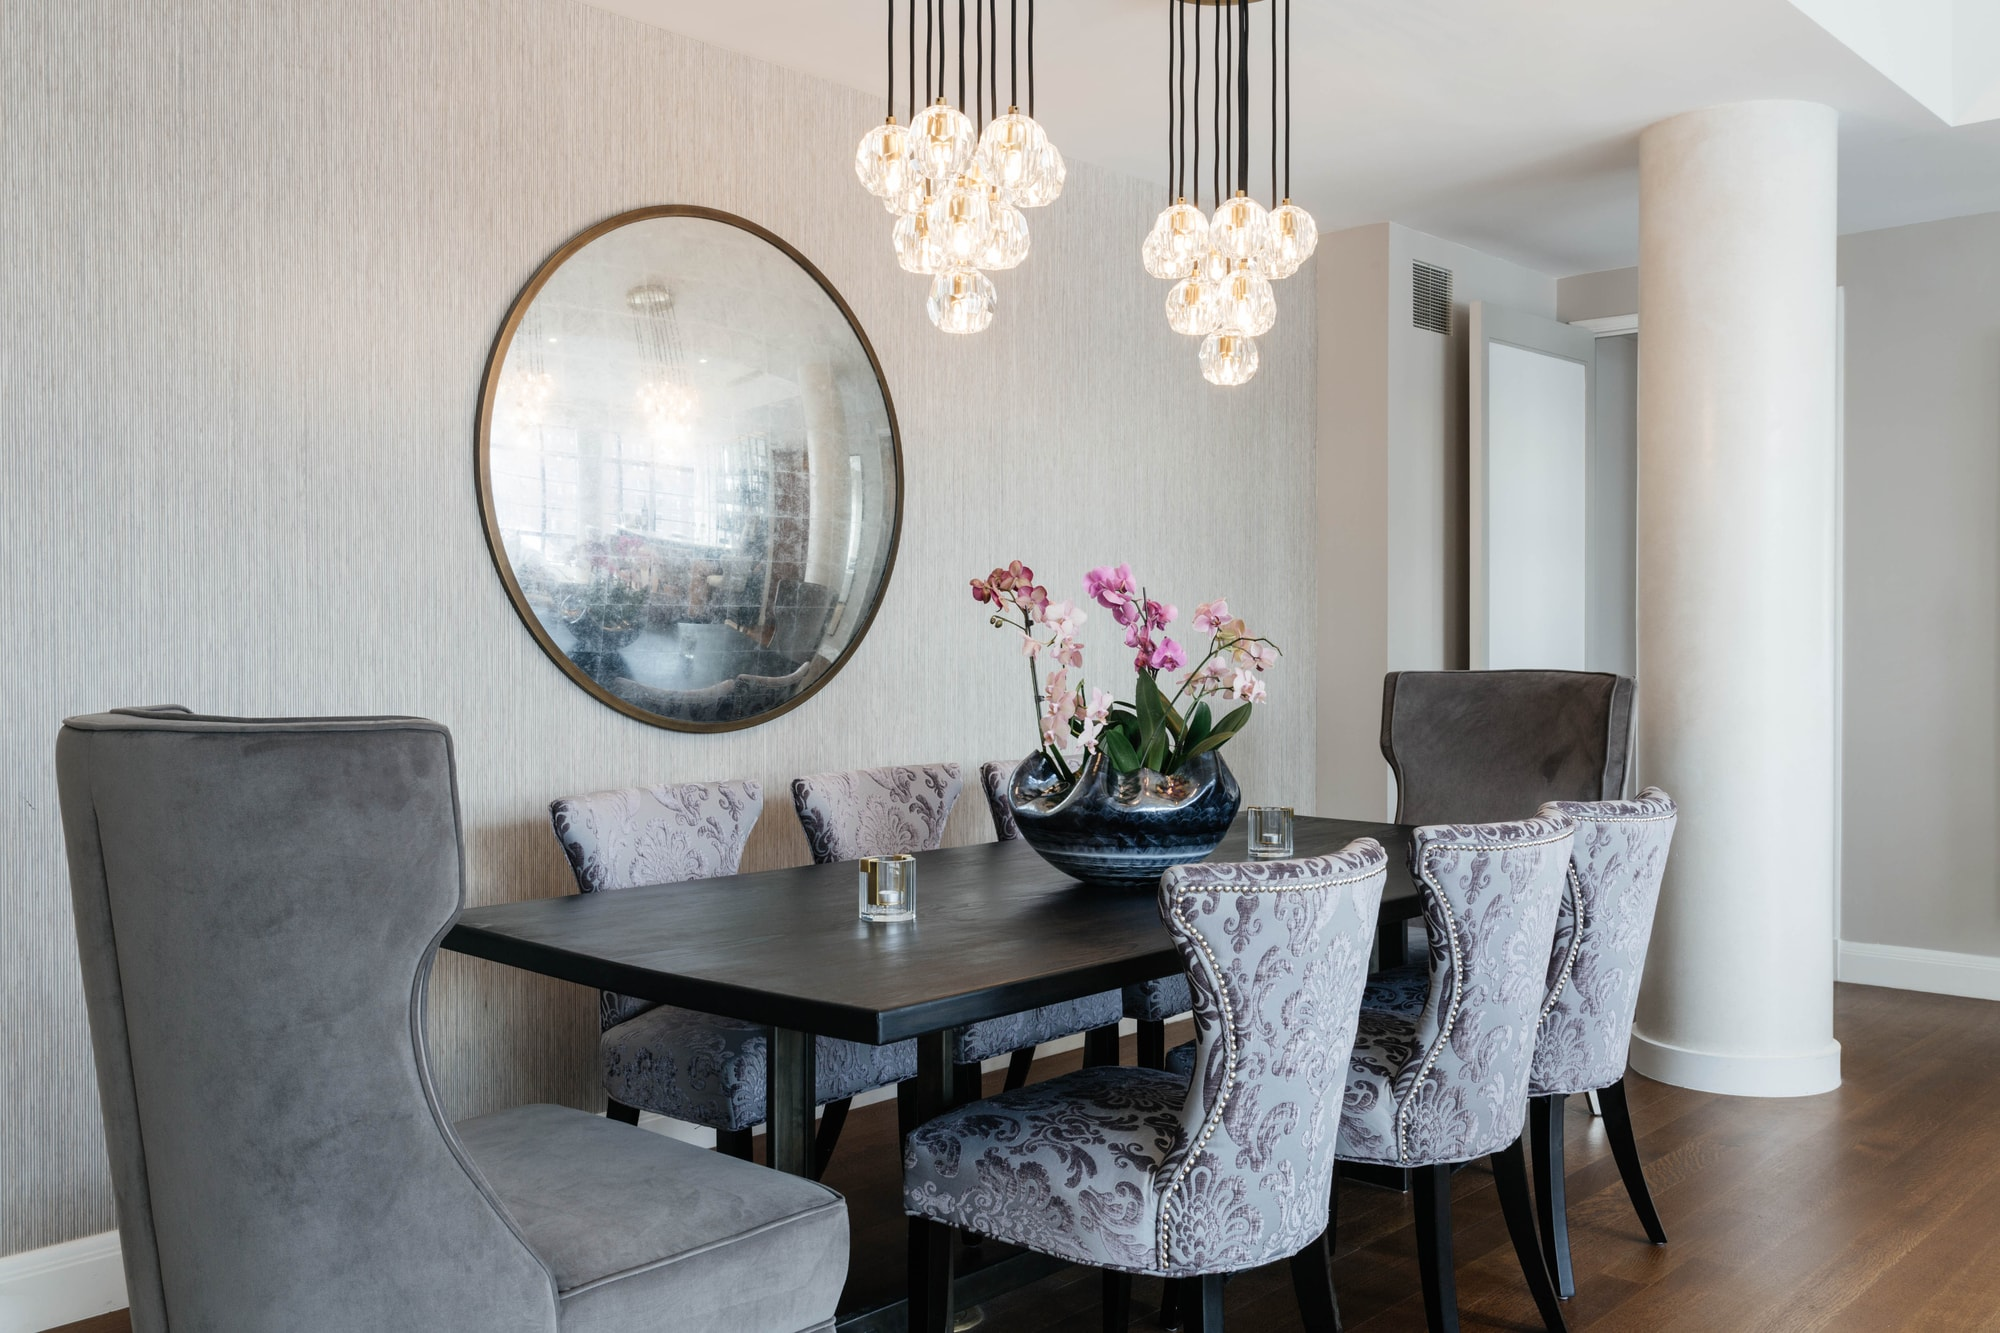 Dining room space with convex mirror hanging on wall